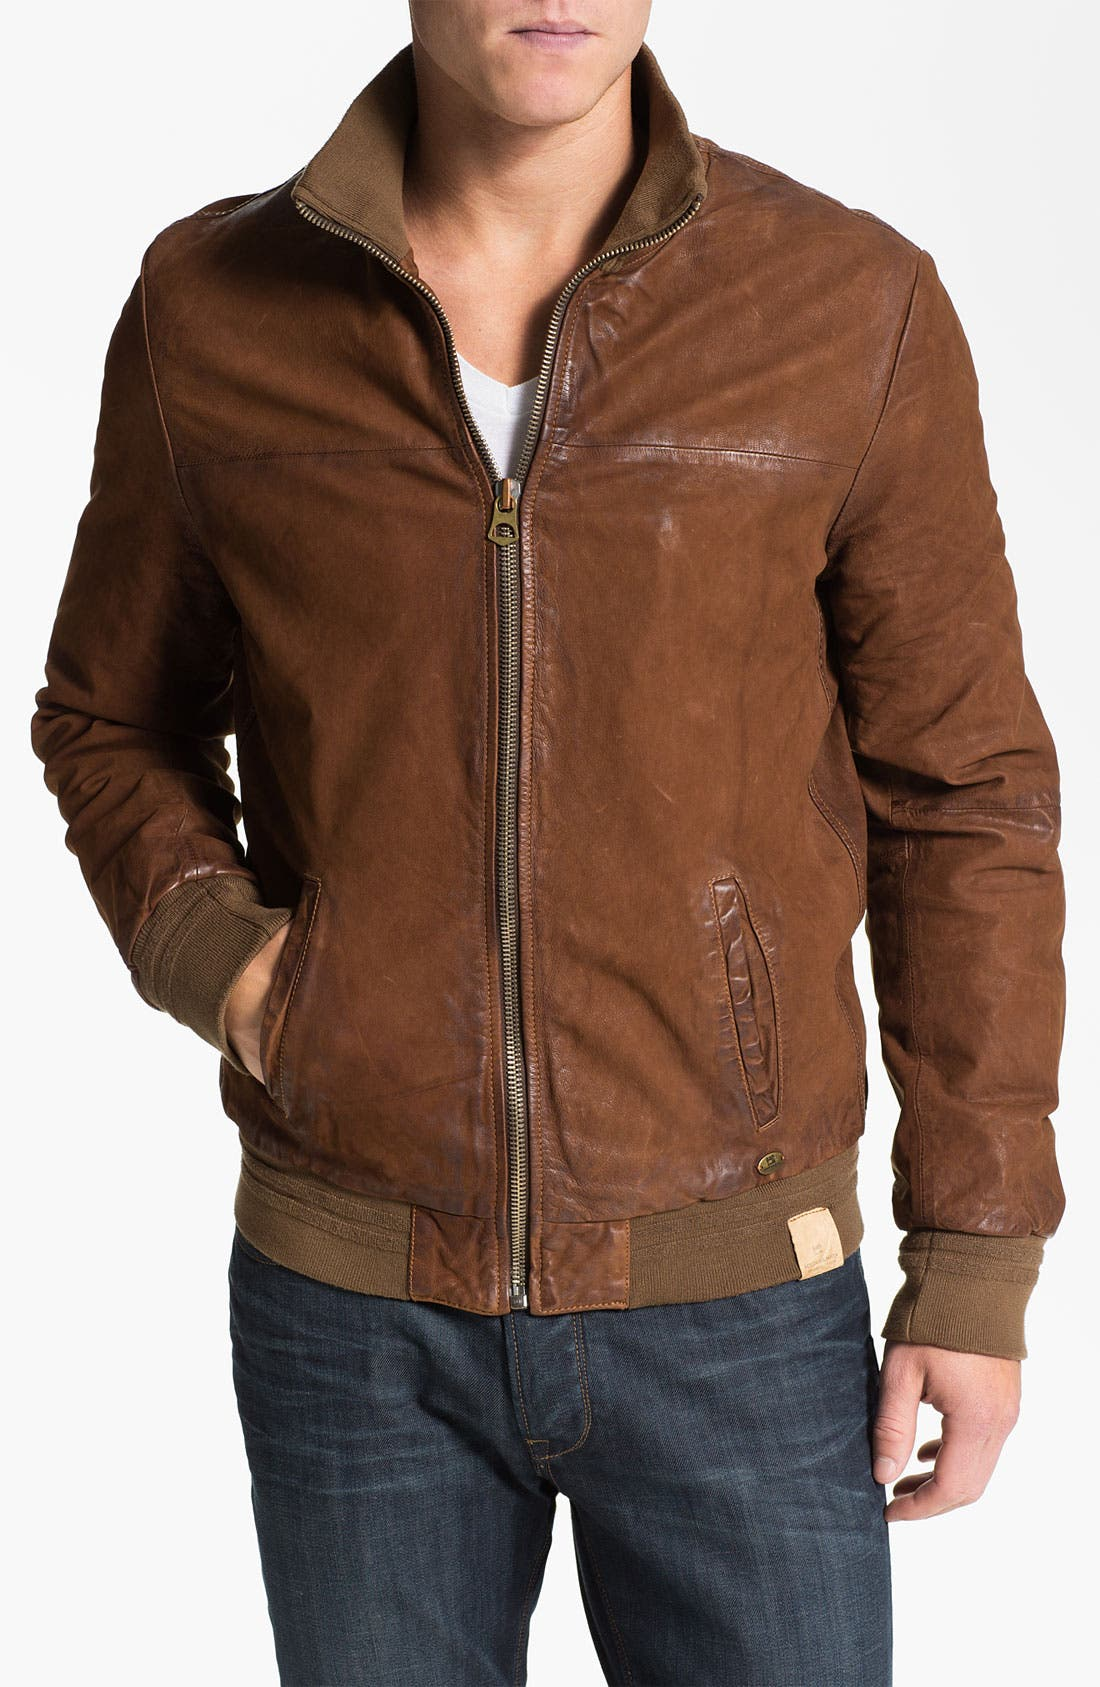 Alternate Image 1 Selected - Scotch & Soda Leather Bomber Jacket